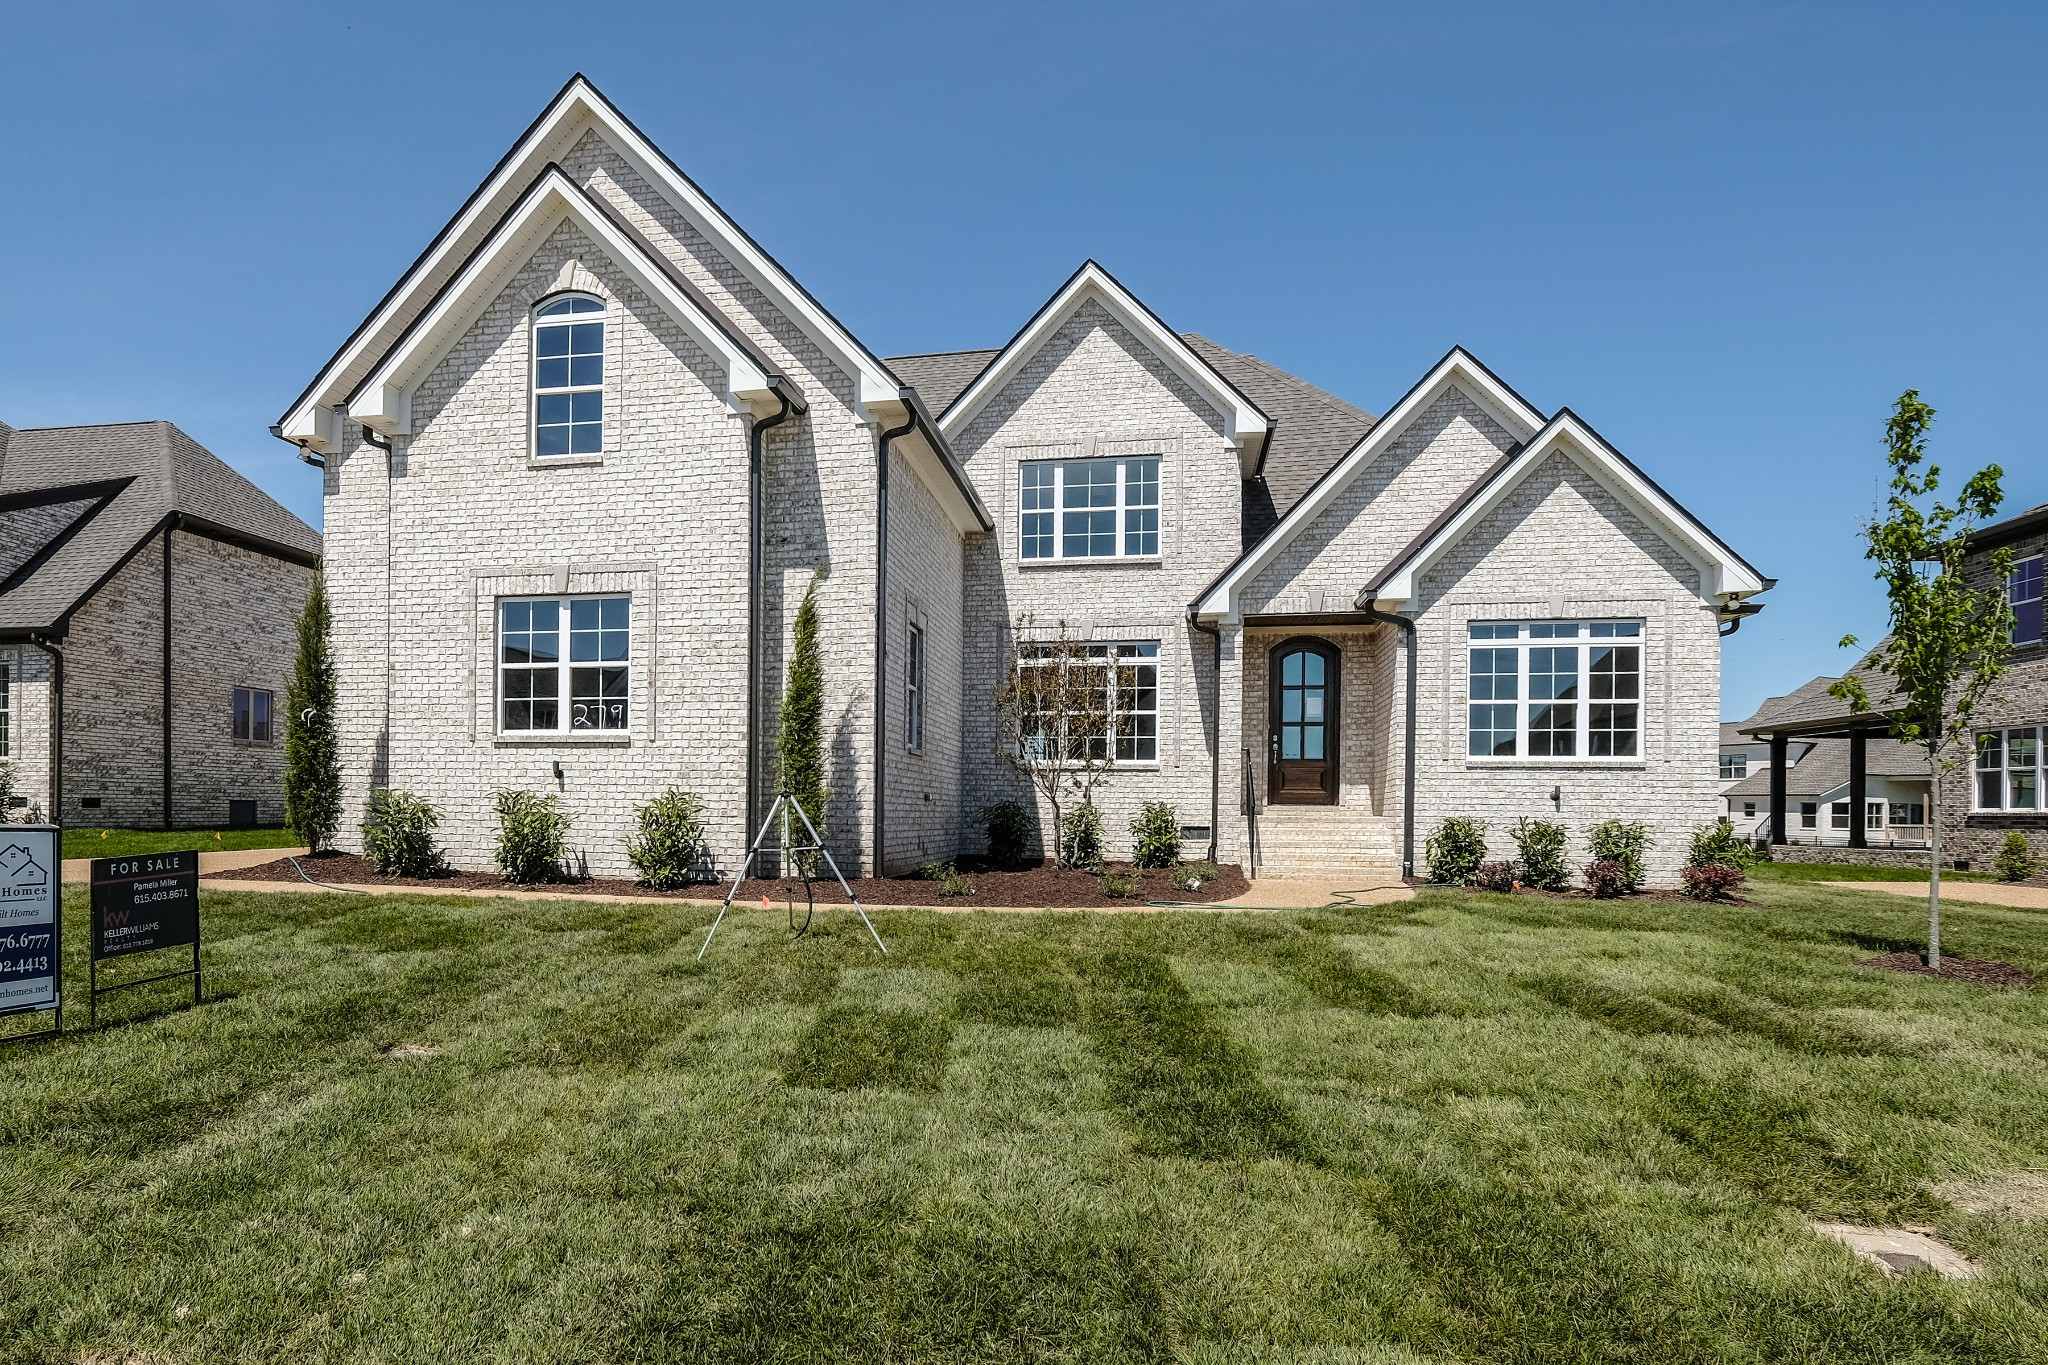 2040 Autumn Ridge Way (Lot 279), Spring Hill in Williamson County, T County, TN 37174 Home for Sale